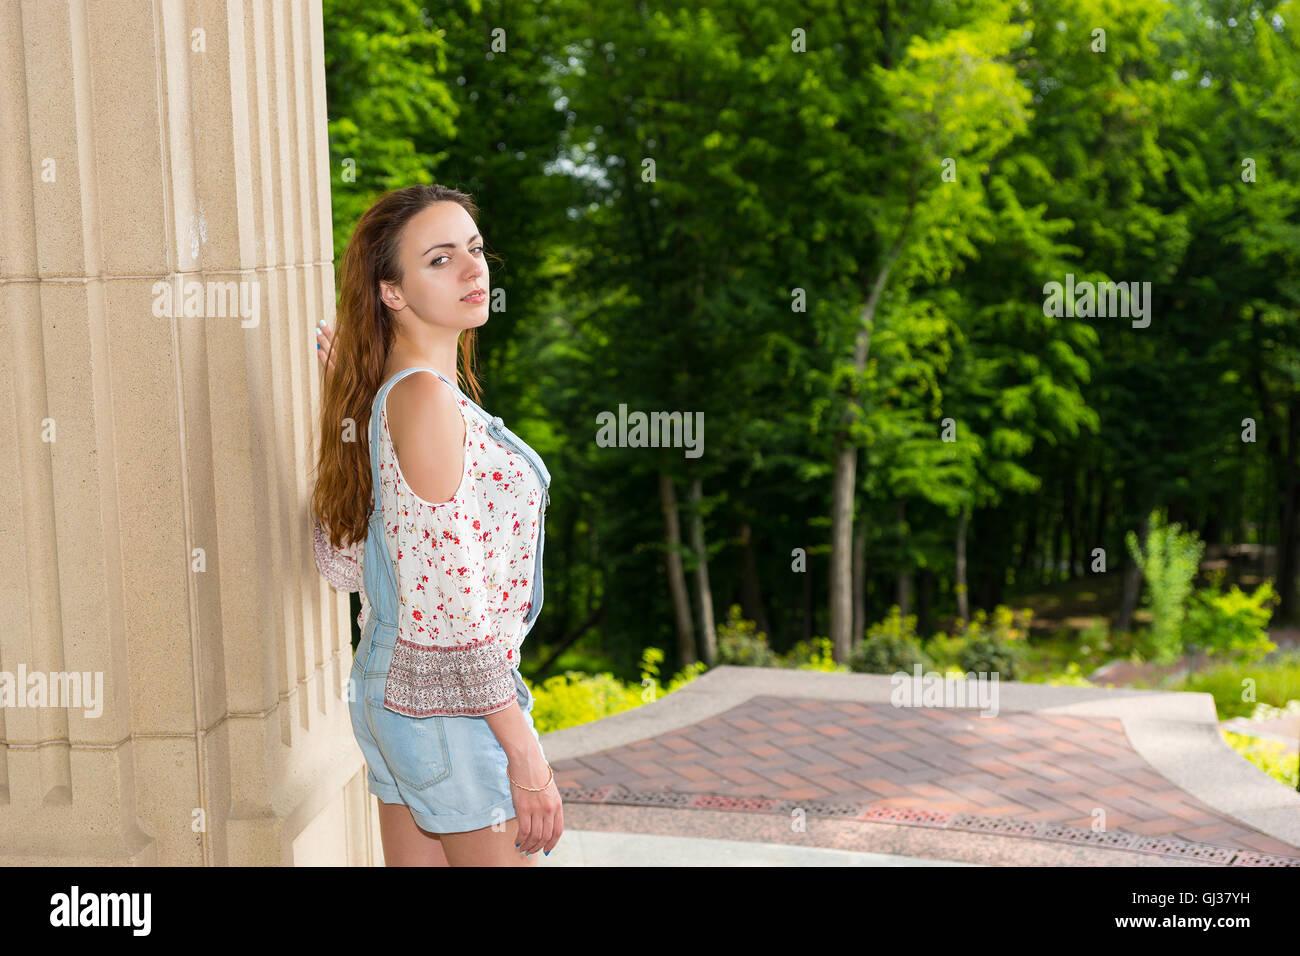 Young female turned around to look into the camera standing near stone wall outside facing trees in park or yard - Stock Image